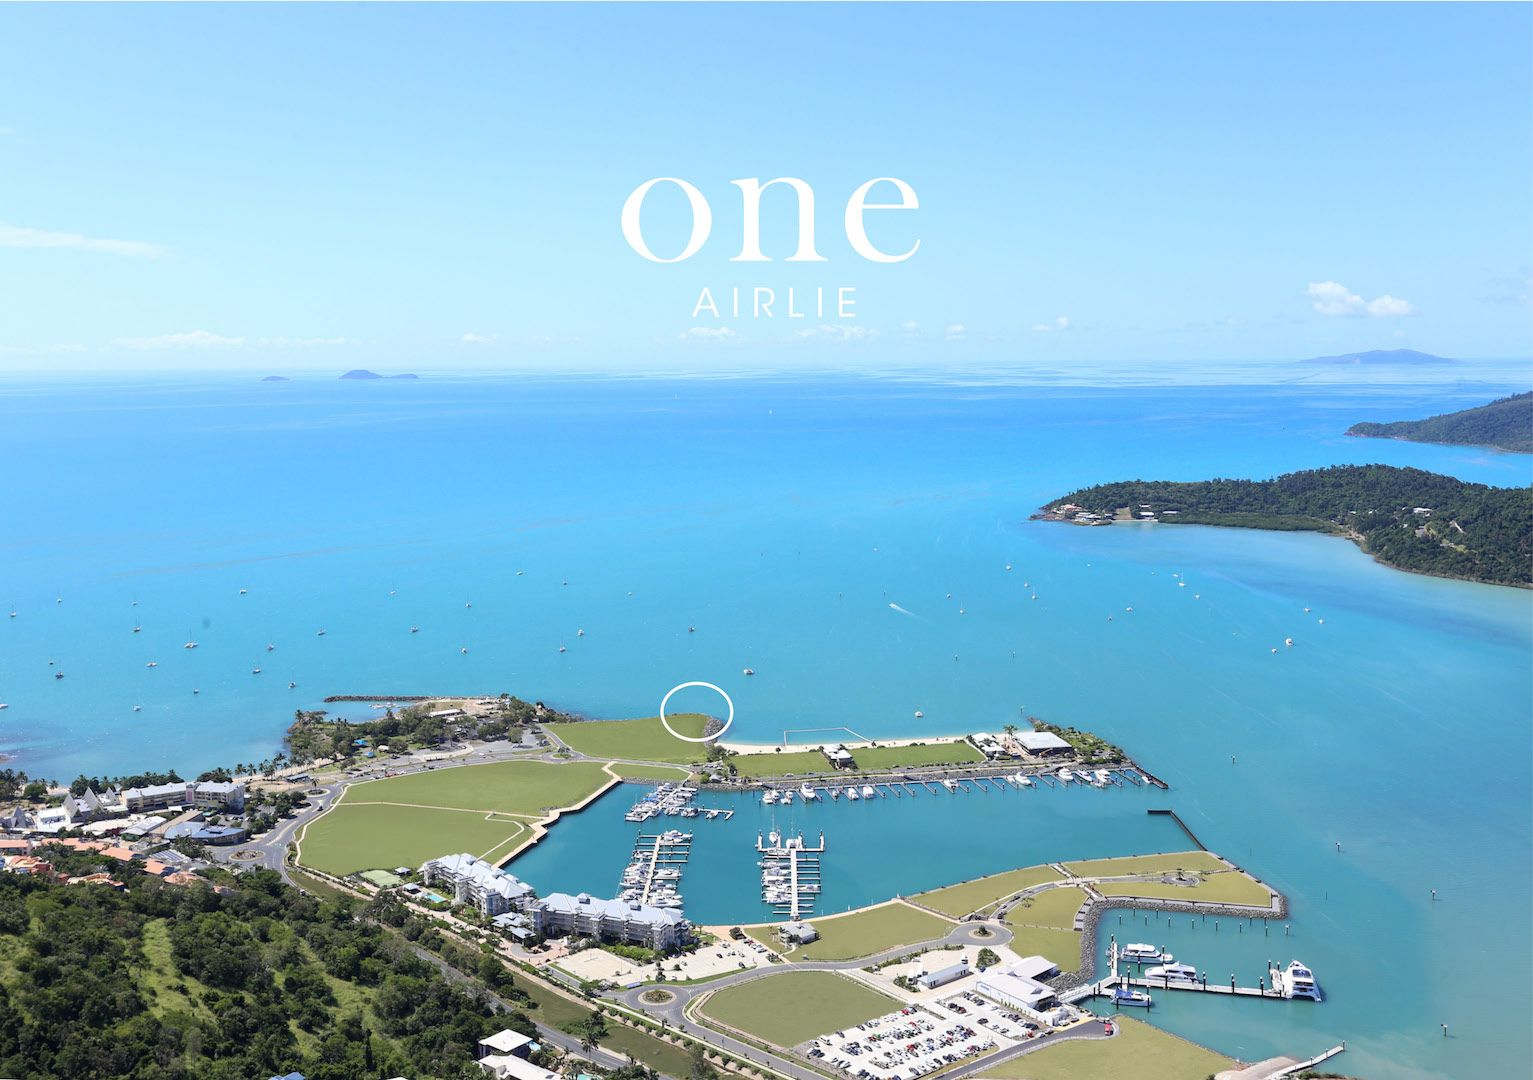 土地 / 的地塊 為 出售 在 One Airlie - An unrepeatable opportunity to create a luxury Whitsundays residence Airlie Beach, Queensland,4802 澳大利亞